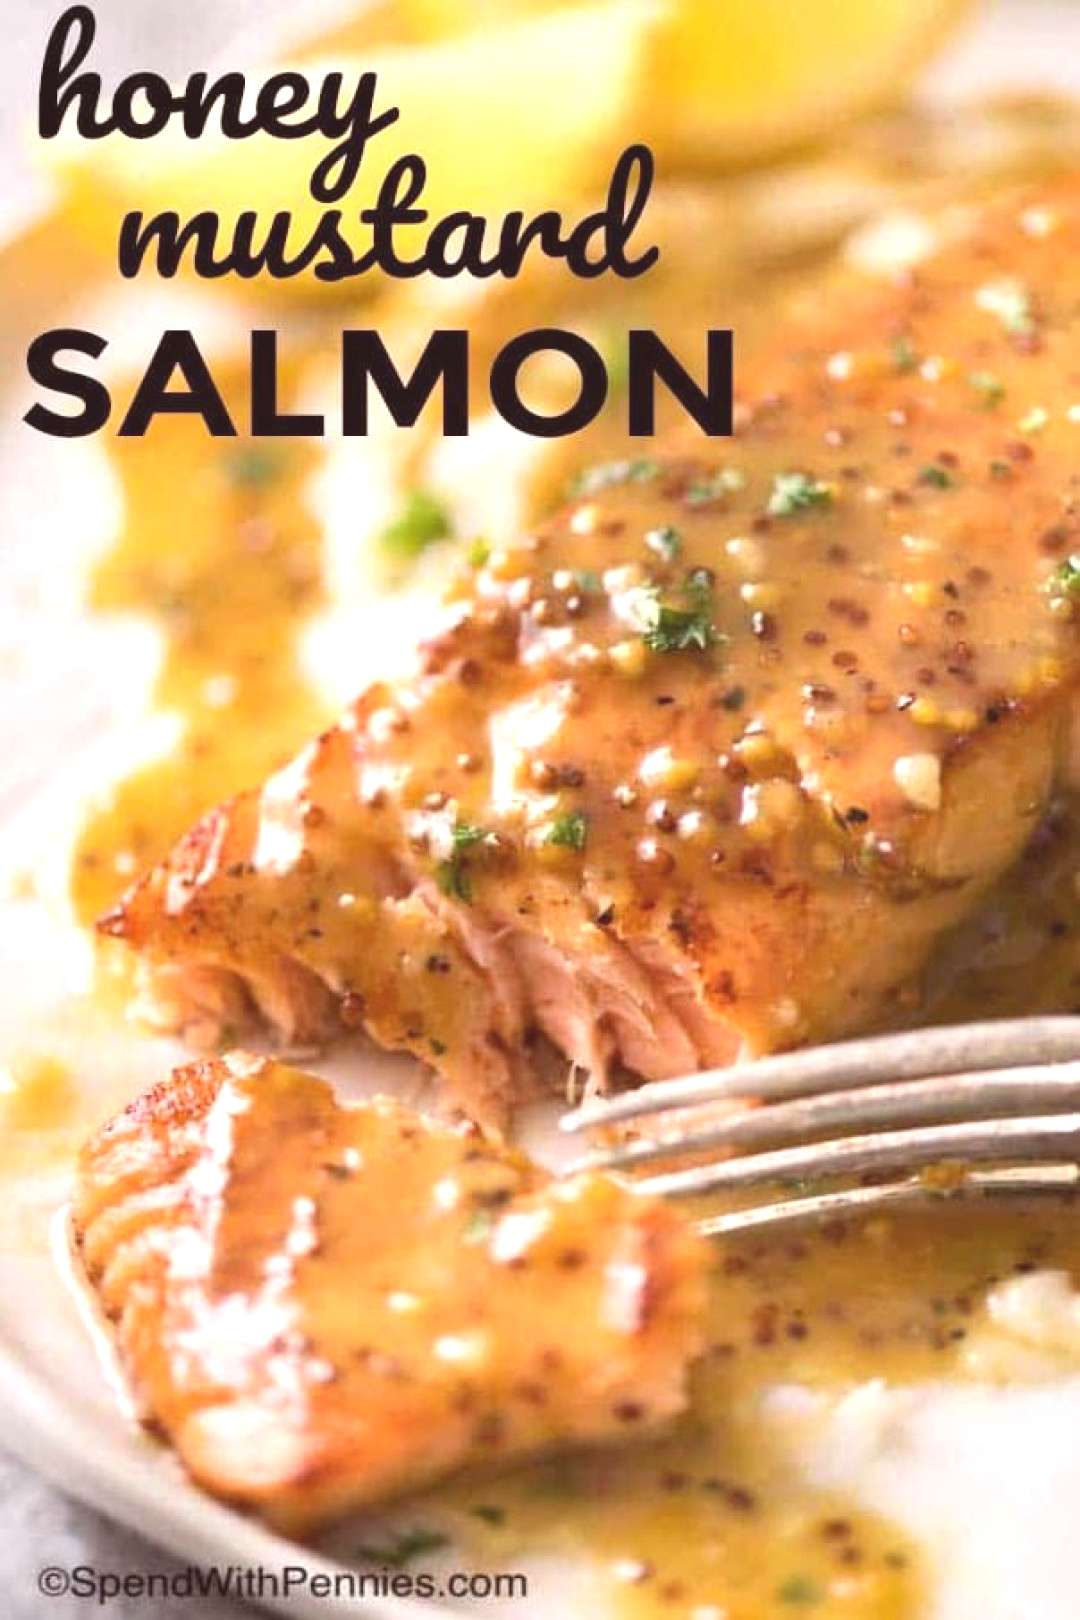 Honey Mustard Salmon - Spend With Pennies,  ... Honey Mustard Salmon - Spend With Pennies,